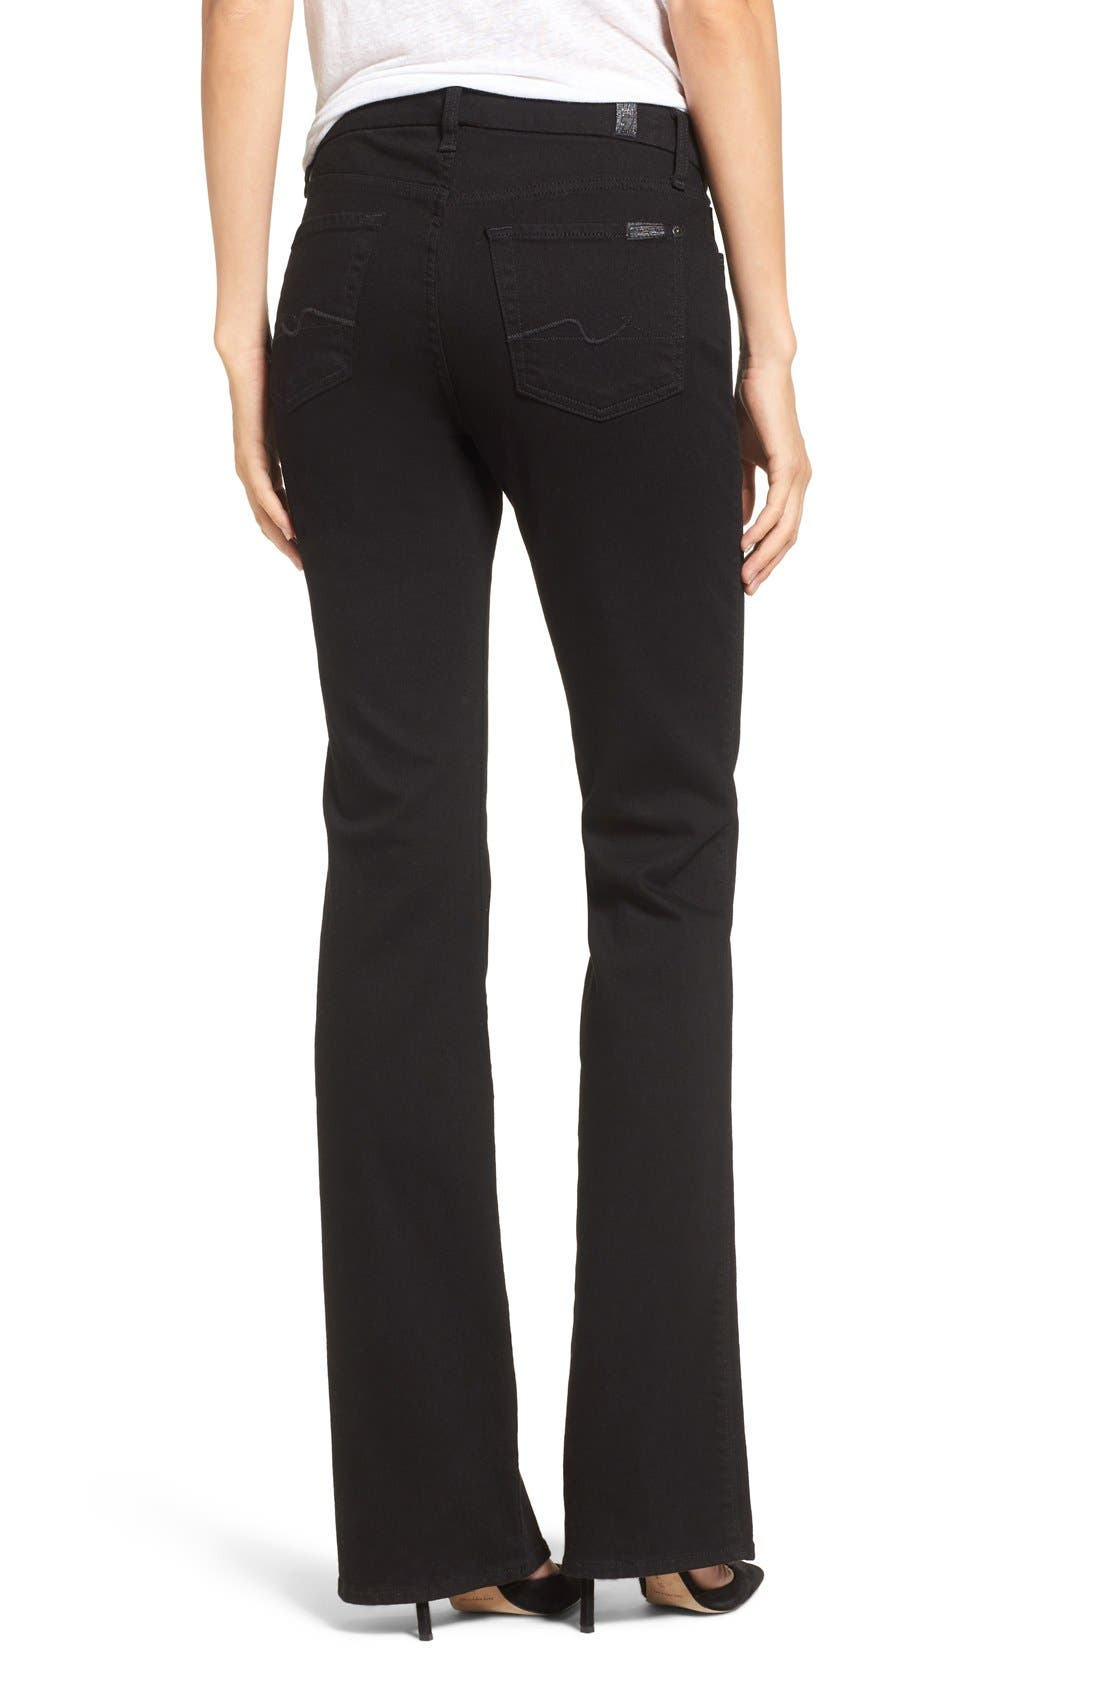 Alternate Image 2  - 7 For All Mankind® 'Kimmie' Bootcut Jeans (Washed Overdyed Black)